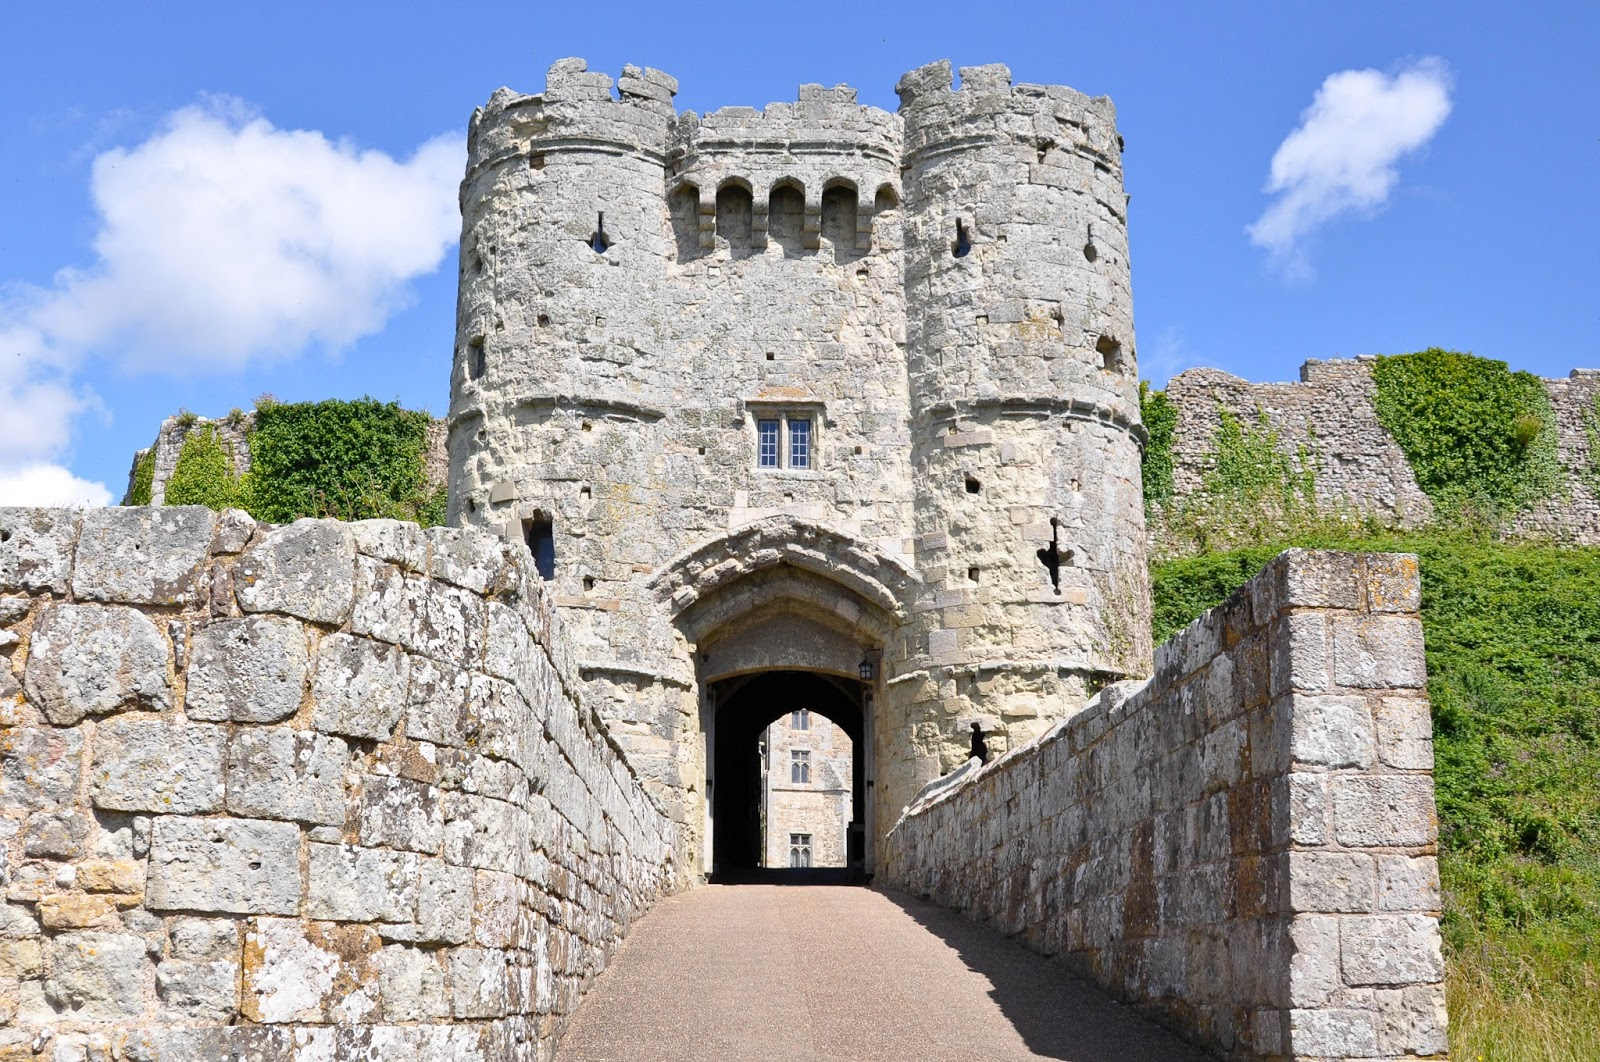 The entrance to the castle, Carisbrook Castle, Isle of Wight, UK